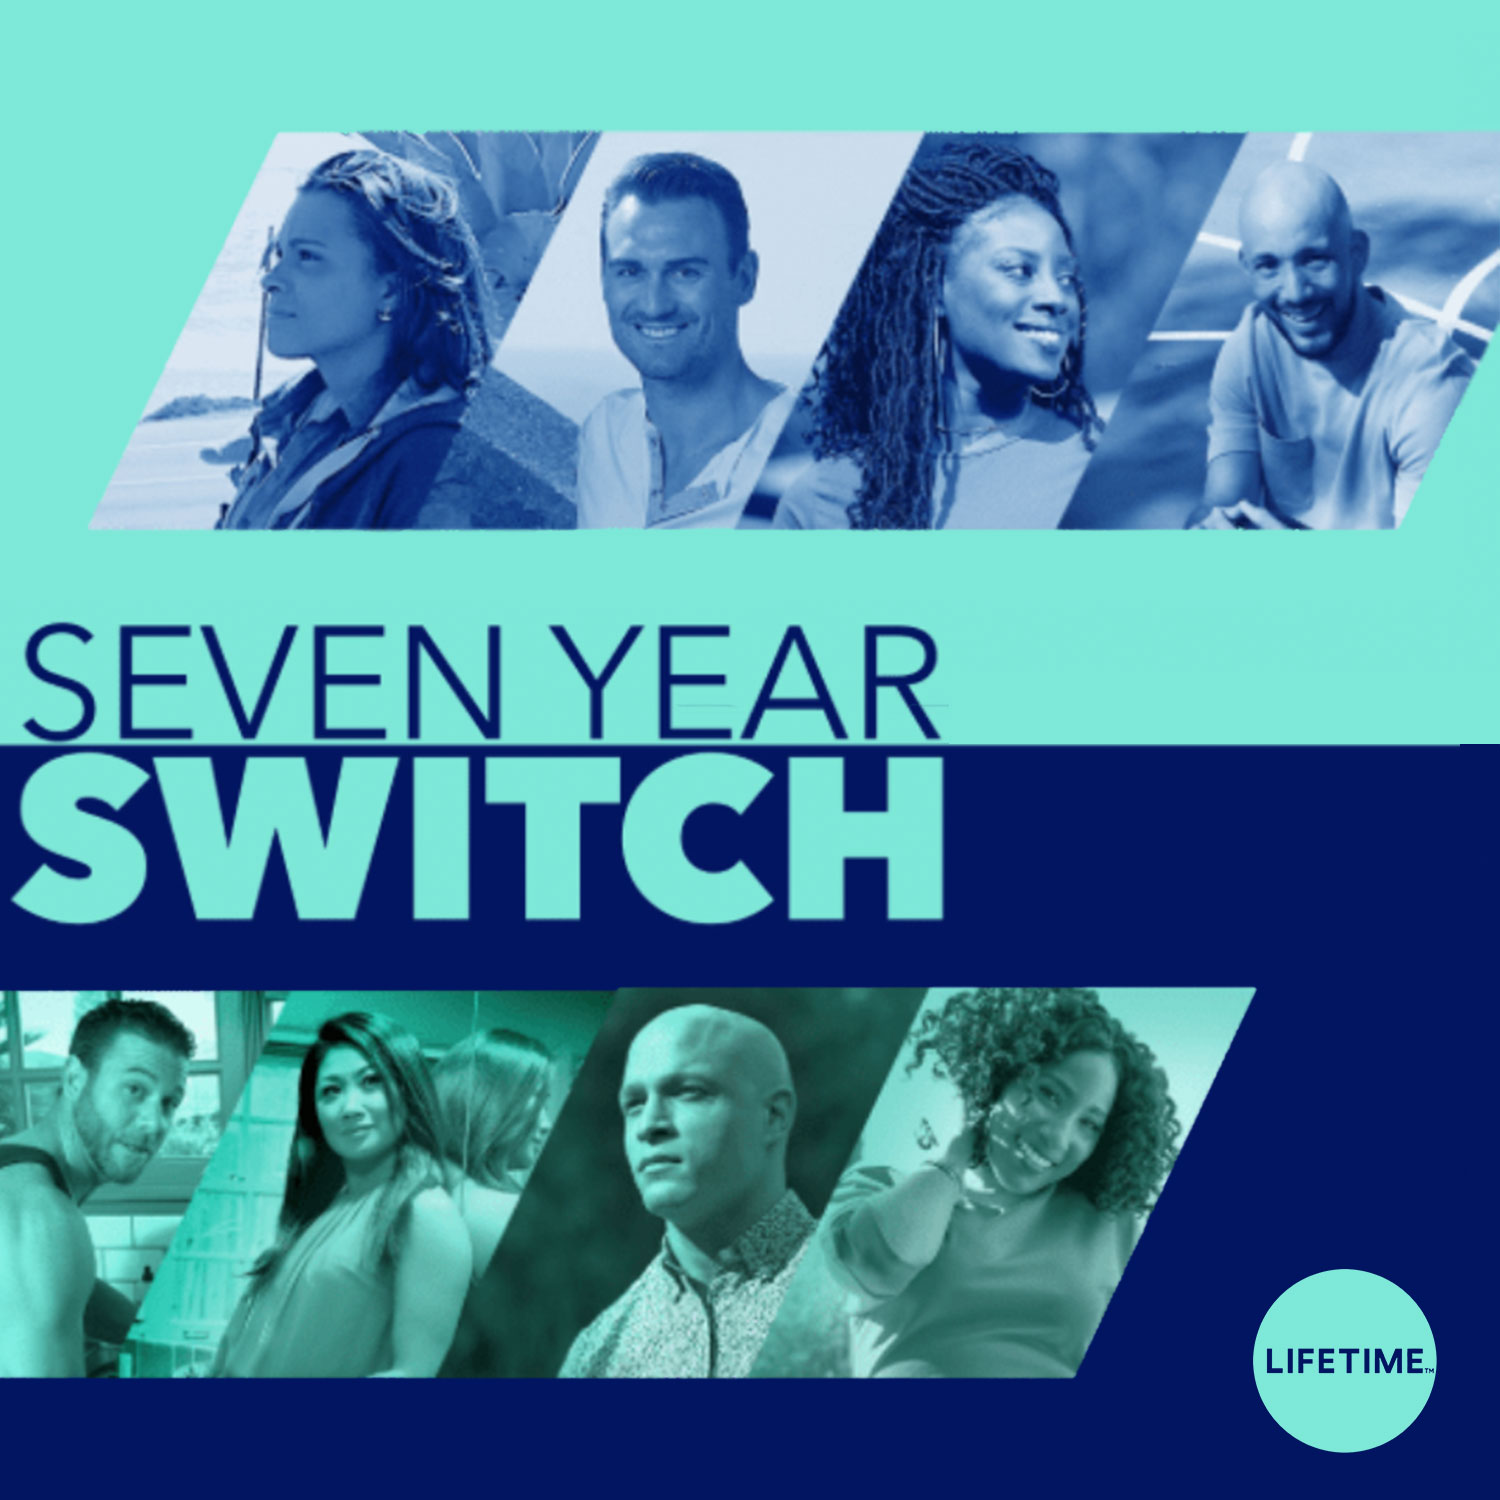 7YearSwitch